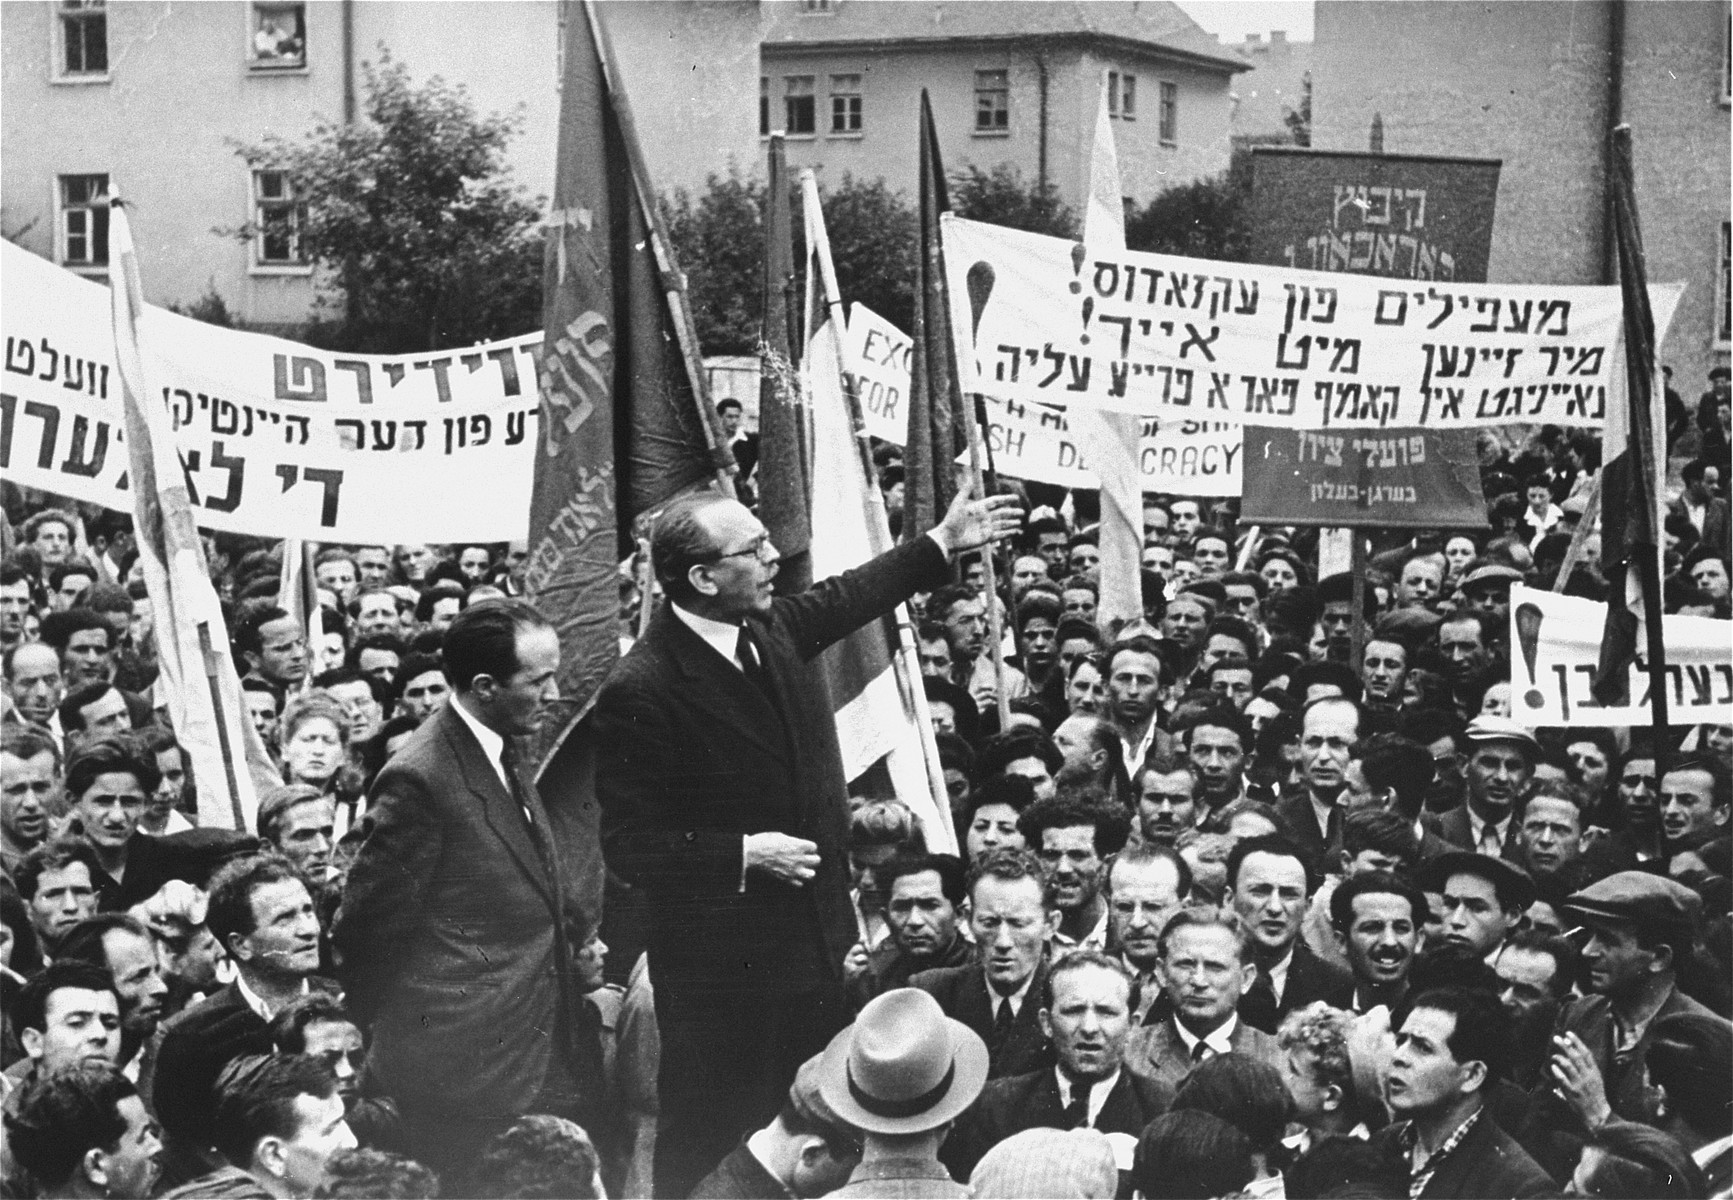 "Marc Jarblum addresses a crowd of DPs at a demonstration protesting the forced return of the Exodus 1947 passengers to Europe.     The Yiddish text of the banner on the right reads:  ""Illegal immigrants from the Exodus we are with you!  United in the struggle for unrestricted immigration!""   Josef Rosensaft stands next to the speaker.  Also pictured are Berel Laufer, Norbert Wollheim, and Max Silbernik.  Josef Rosensaft (1911-1975) was the son of Menachem Mendel and Devora (Szpiro) Rosensaft.  He was born and raised in Bedzin, Poland, where his father, a trained accountant, worked in the family's scrap metal business.  Josef had four older siblings: Chava, Rachel, Mari-Mindl and Itzhak.  His mother died in a flu epidemic when he was eight or nine.  During his youth and early adulthood, Josef was active in the labor Zionist movement.  After he finished school he joined his father in the scrap metal business.  Josef remained in Bedzin during the first four years of the German occupation of Poland.  On June 22, 1943 he was put on a deportation transport to Auschwitz, but managed to escape by diving out of the train into the Vistula River.  Though wounded by German bullets during his escape, Josef made it back to Bedzin the following morning.  A few weeks later during the final liquidation of the ghetto, his father died in his arms of natural causes. Josef then fled to the nearby town of Zawierce to escape the deportations.  However, that same month he was again rounded-up and sent to Auschwitz-Birkenau.  Josef spent five months in the camp before being transferred to the Auschwitz sub-camp of Lagisza Cmentarna in January 1944.  That winter he escaped from the camp and returned to Bedzin, where he was hidden by a Polish friend for six weeks.  He was recaptured in April and sent back to Auschwitz, where he was imprisoned in the Block 11 punishment barracks for seven months.  In November Josef was transferred to the Buchenwald sub-camp of Langensalza, and from there to Dora-Mittelbau early in 1945.  He was moved one last time to Bergen-Belsen in early April, where he was liberated by the British on April 15.  Within days of the liberation, Josef was chosen by his fellow survivors to become chairman of the Bergen-Belsen camp committee.  Later, after the convening of the First Congress of Liberated Jews in the British Zone in September 1945, he was elected chairman of the Central Jewish Committee for the British Zone of Germany.  He headed both the camp committee and the central committee until the closing of the Bergen-Belsen displaced persons camp in the summer of 1950.  During his years of leadership in the DP community Josef repeatedly stood up to the British in defense of the needs and political sensitivities of Jewish survivors.  He demanded that the British formally recognize Jews as a separate category of displaced persons.  He halted the transfer of Belsen DPs to two inferior camps established near the Dutch border.  He thwarted the British attempt to change the name of the Belsen DP camp to Hohne, which would have diminished the moral and political power of the DPs living there that derived from their link to the infamous concentration camp.  Finally, he repeatedly spoke out against the anti-Zionist policies of the British government and actively aided the illegal Bricha and Aliyah Bet movements that strove to get Jews out of Eastern Europe and smuggle them into Palestine.  On August 18, 1946 Josef Rosensaft married Hadassah Bimko (1912-1997), a fellow Bergen-Belsen survivor from Sosnowiec, Poland, who at the time was head of the health department of the Central Jewish Committee in the British Zone.  Hadassah was the daughter of Hersh Leib and Hendla Bimko, Gerer Hasidim who worked in the jewelry manufacturing business.  She had a younger brother, Benjamin and a younger sister, Roszka.  In the summer of 1943 Hadassah was deported to Auschwitz-Birkenau, where she spent fifteen months before being transferred to Bergen-Belsen in November 1944.  While she survived, most of her relatives, including her husband, son, parents and sister, perished in Auschwitz.  A dentist by training who had also studied medicine, Hadassah was recruited immediately after the liberation to organize a group of Jewish doctors and nurses in the camp to help British medical personnel treat the thousands of Belsen survivors suffering from disease and malnutrition.  Hadassah also served as one of the principal prosecution witnesses at the Bergen-Belsen Trial in Lueneburg (September-November 1945).  A year-and-a-half after their marriage, Hadassah gave birth to their son Menachem on May 1, 1948.  With the closing of the Belsen DP camp, the Rosensafts moved to Switzerland, where they spent eight years in the town of Montreux.  The family then immigrated to the United States, where Josef remained active in a variety of Jewish organizations.  He served as president of the World Federation of Bergen-Belsen Survivors until his death."